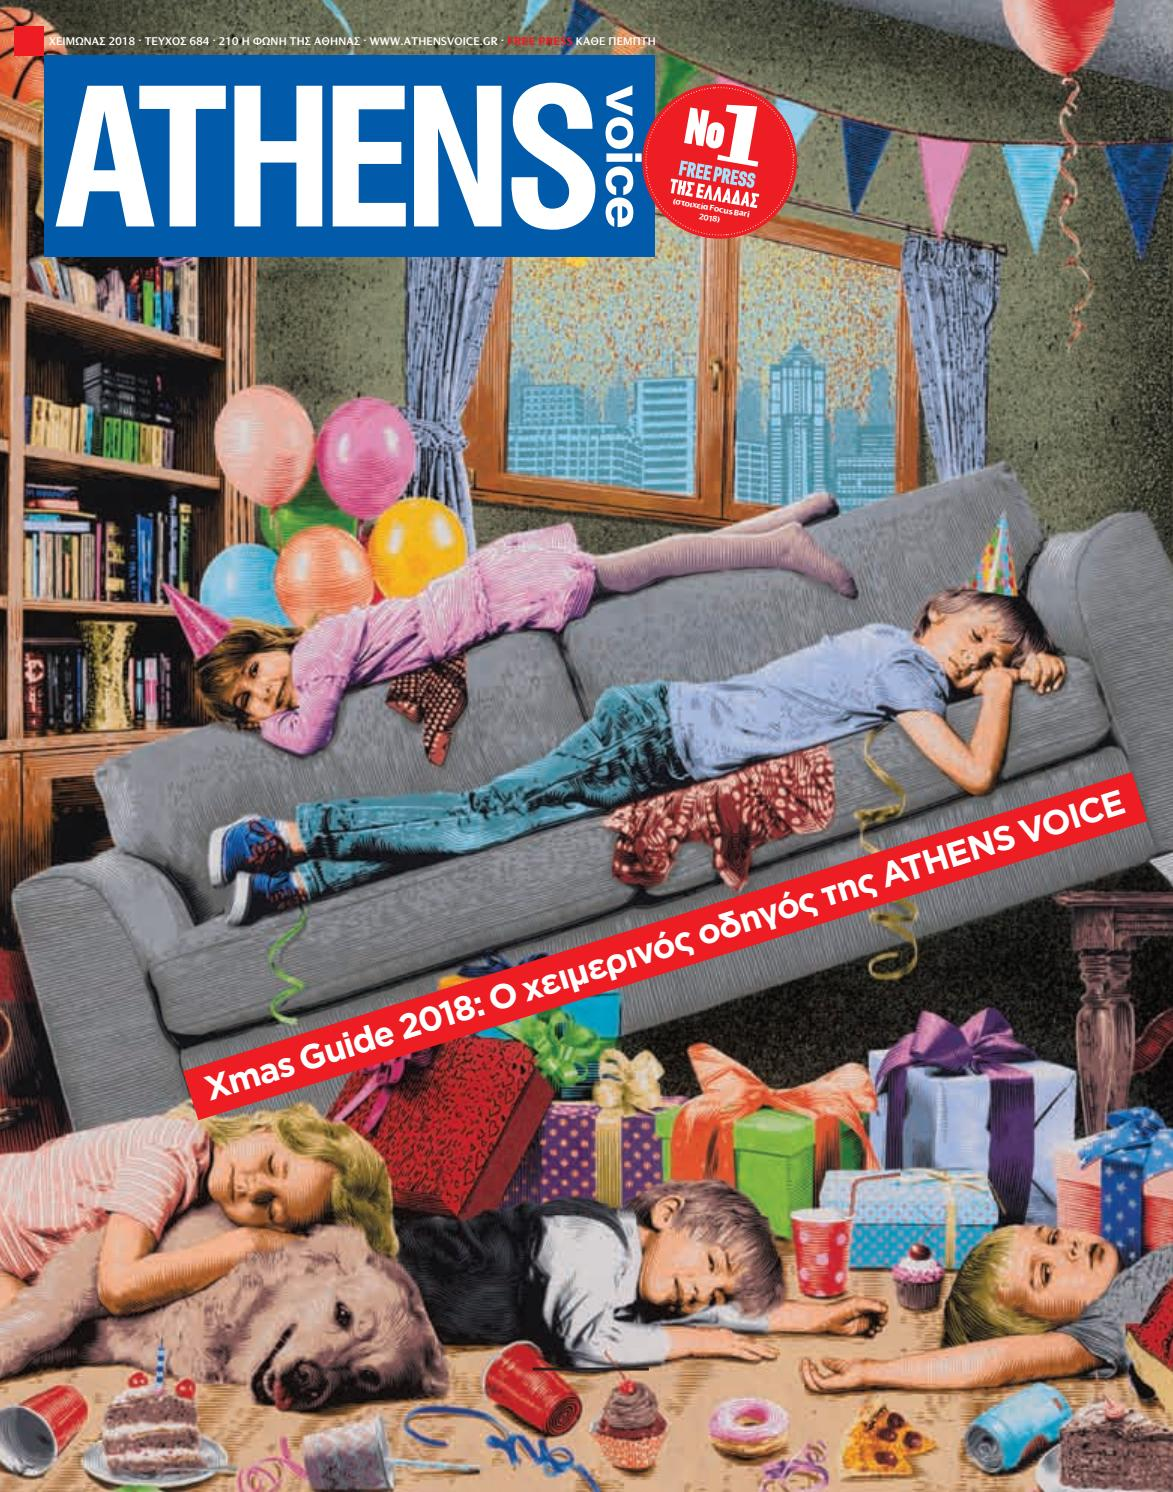 fab35ea3251 Athens Voice 684 by Athens Voice - issuu